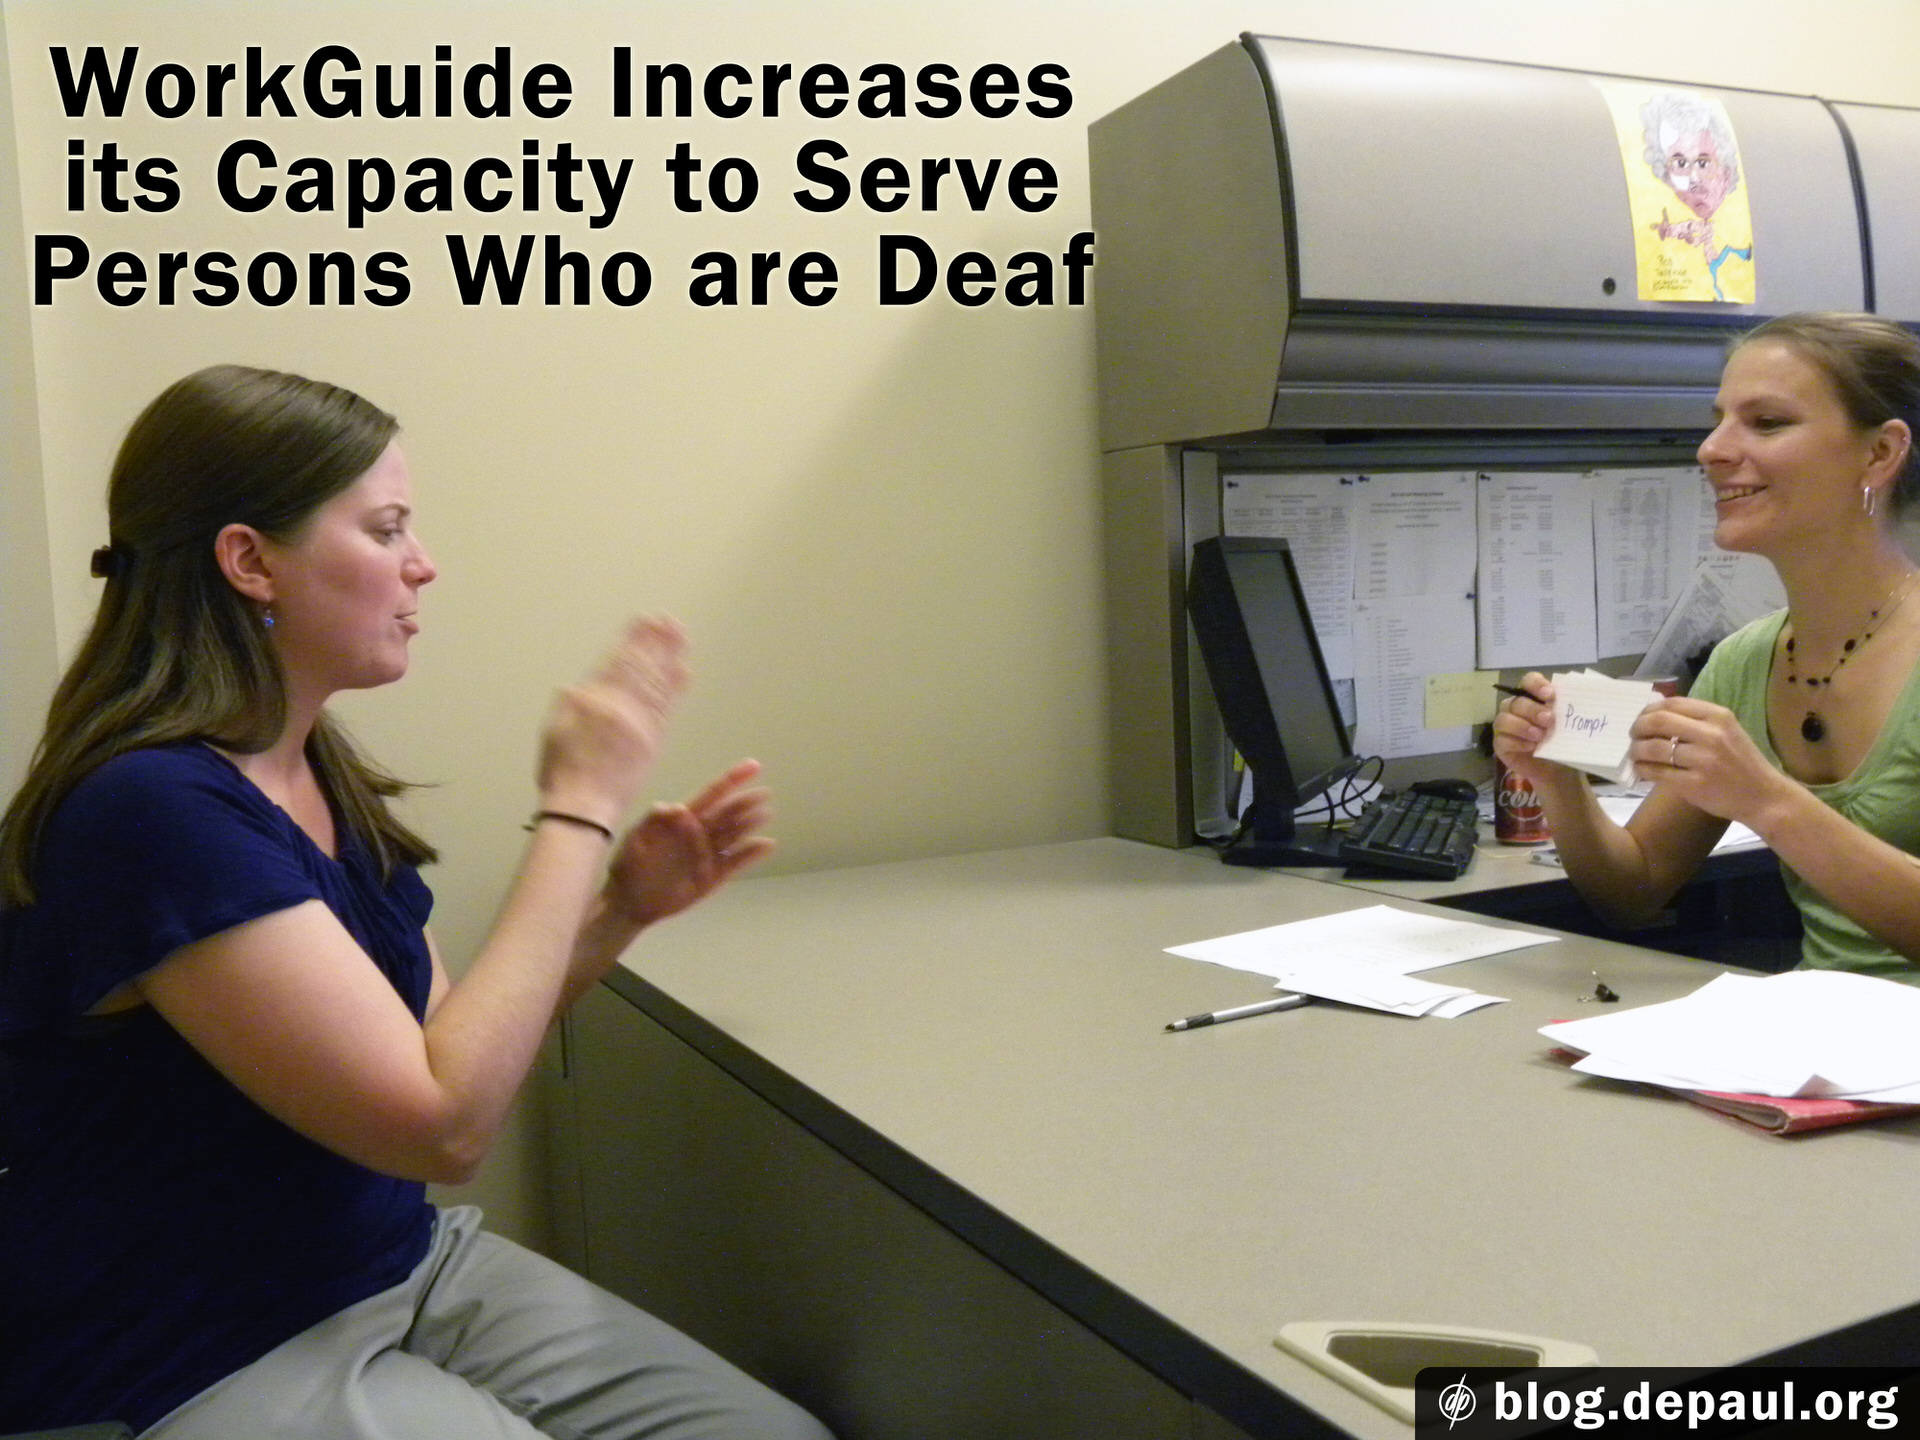 WorkGuide Increases its Capacity to Serve the Deaf, client and workguide employee communicating through sign language